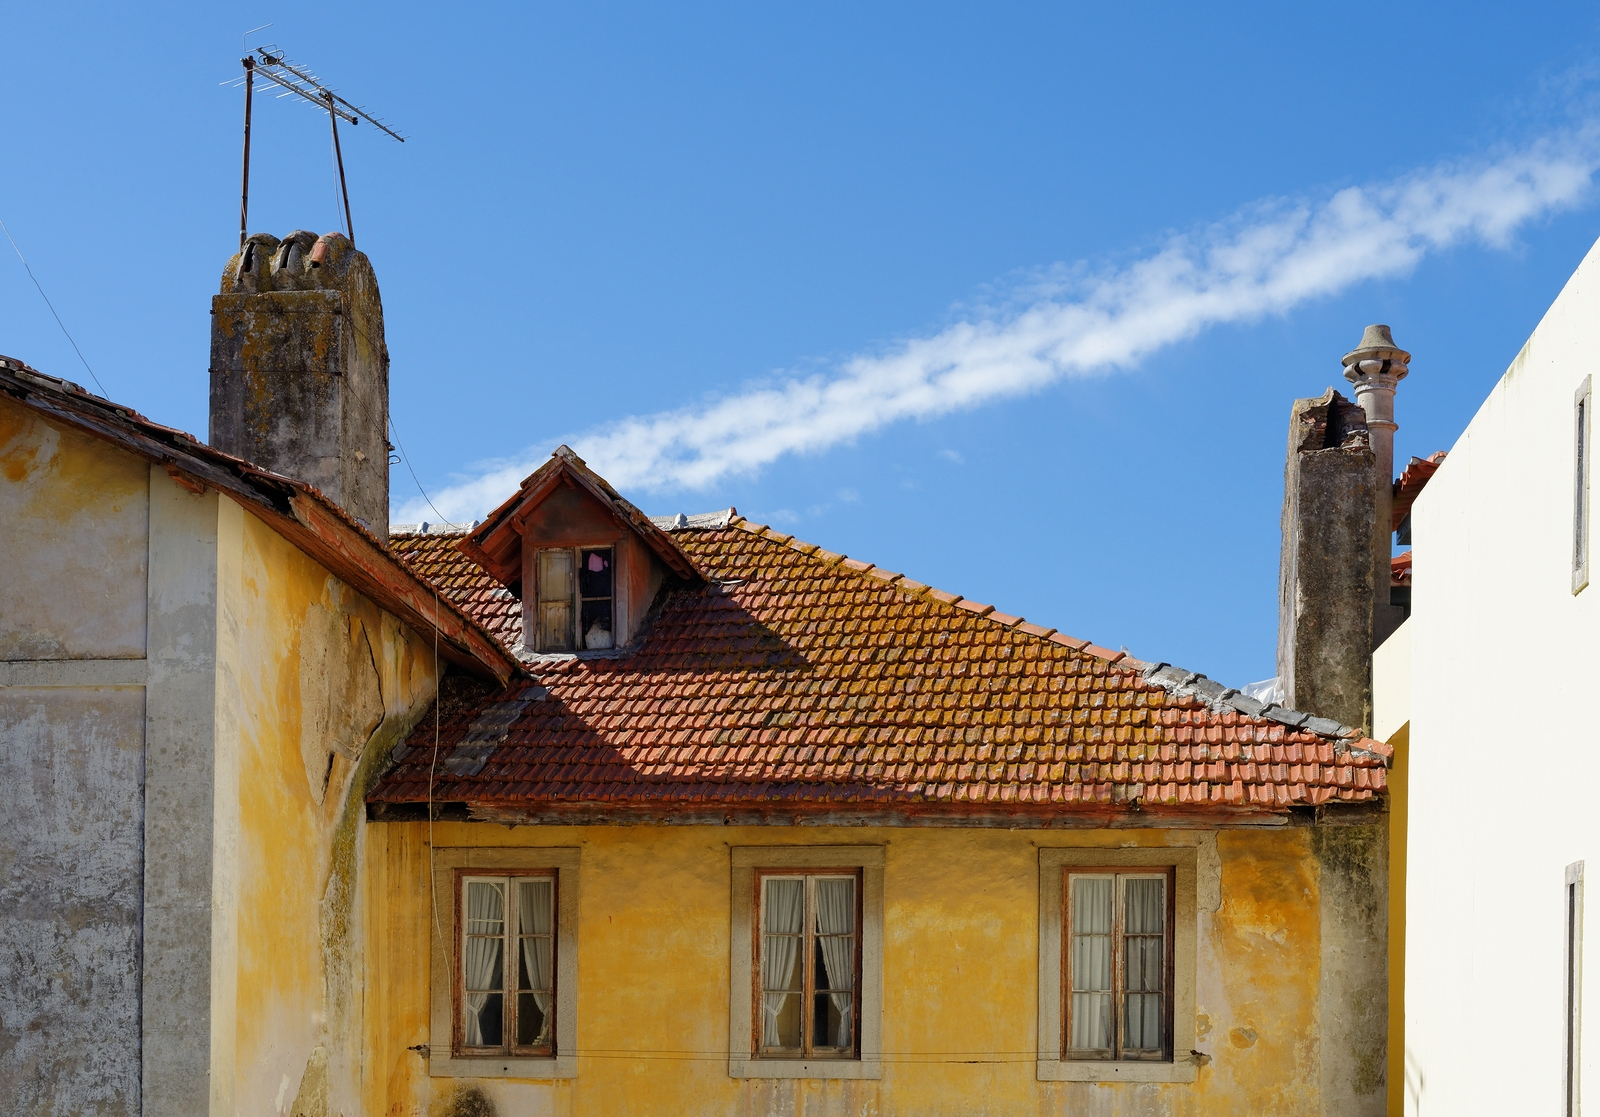 bigstock-An-old-house-in-Sintra-Portuga-108444893